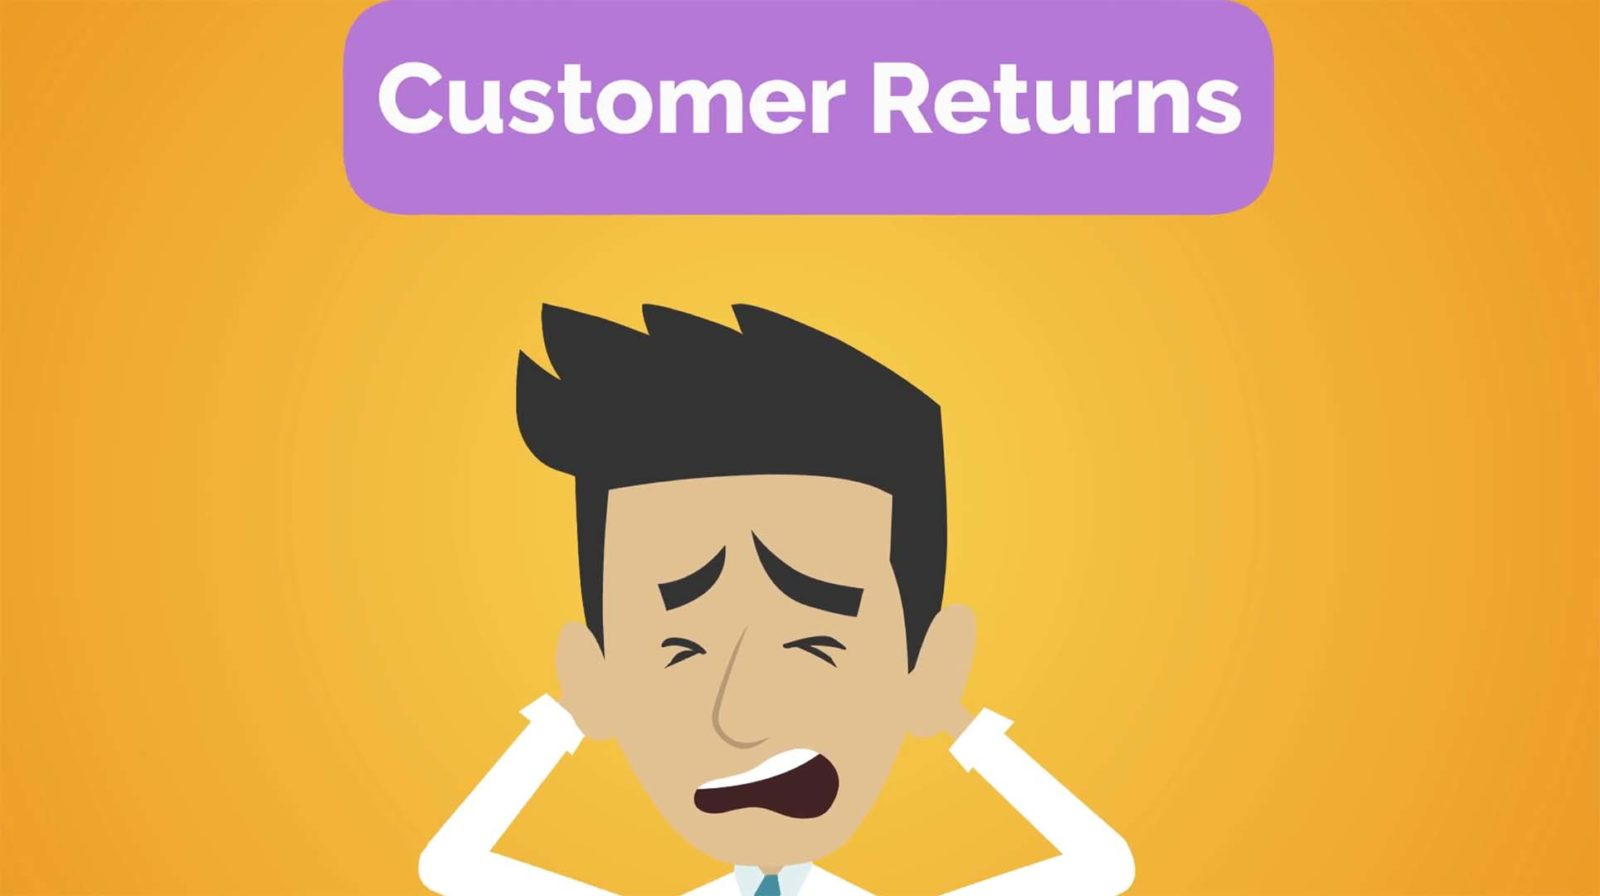 customer returns service for online retailers